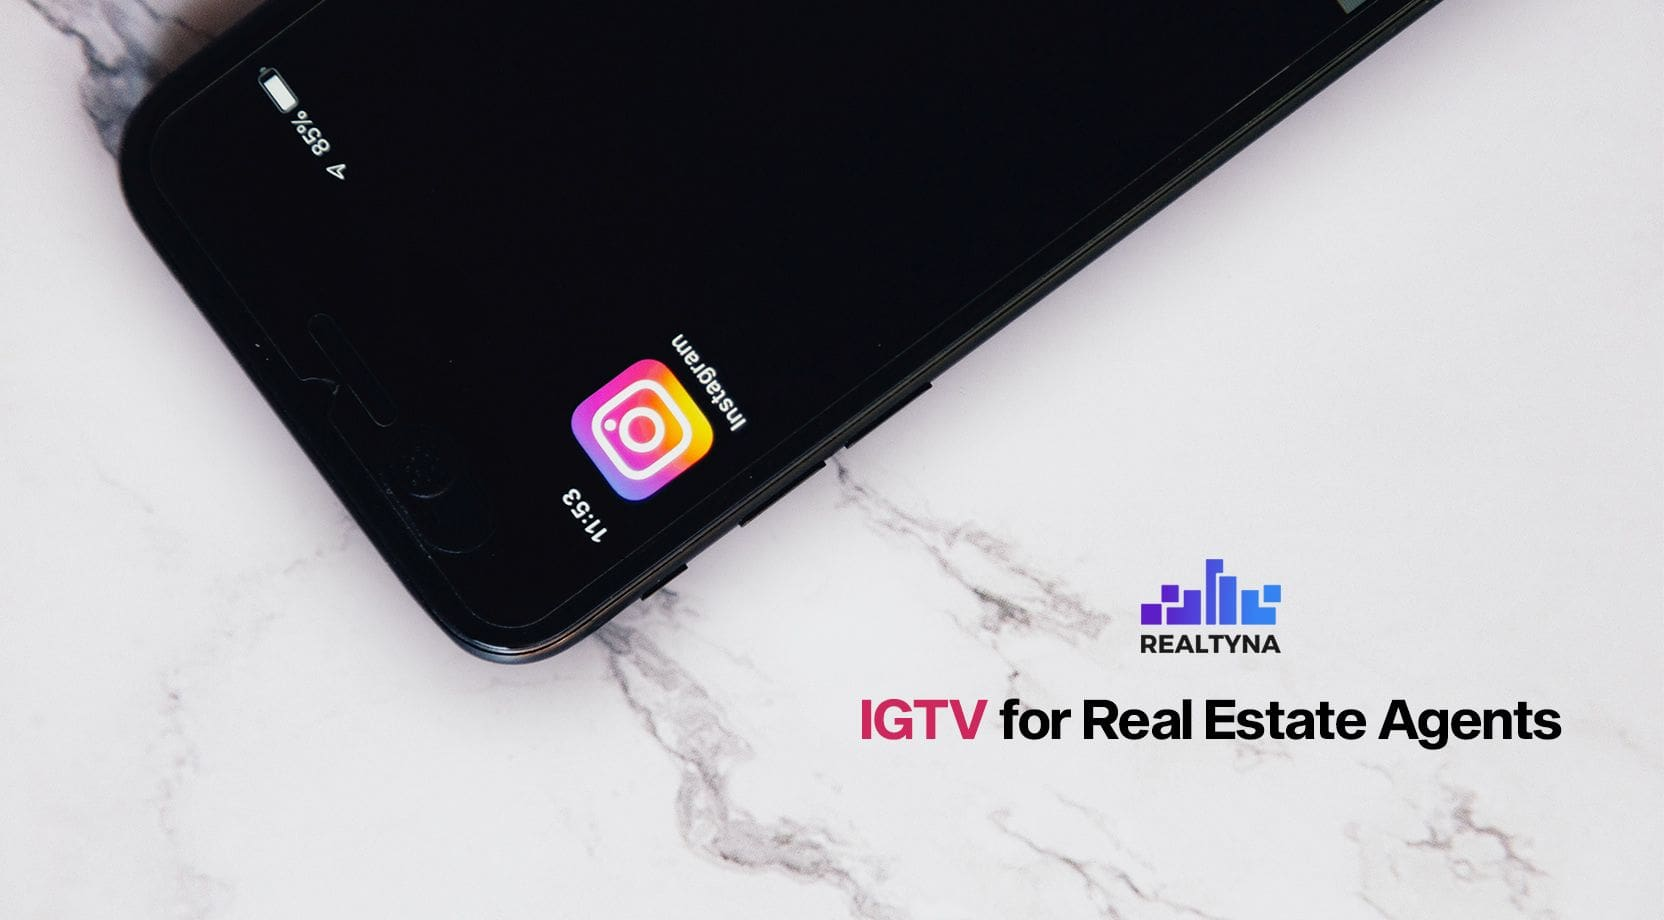 IGTV for Real Estate Agents